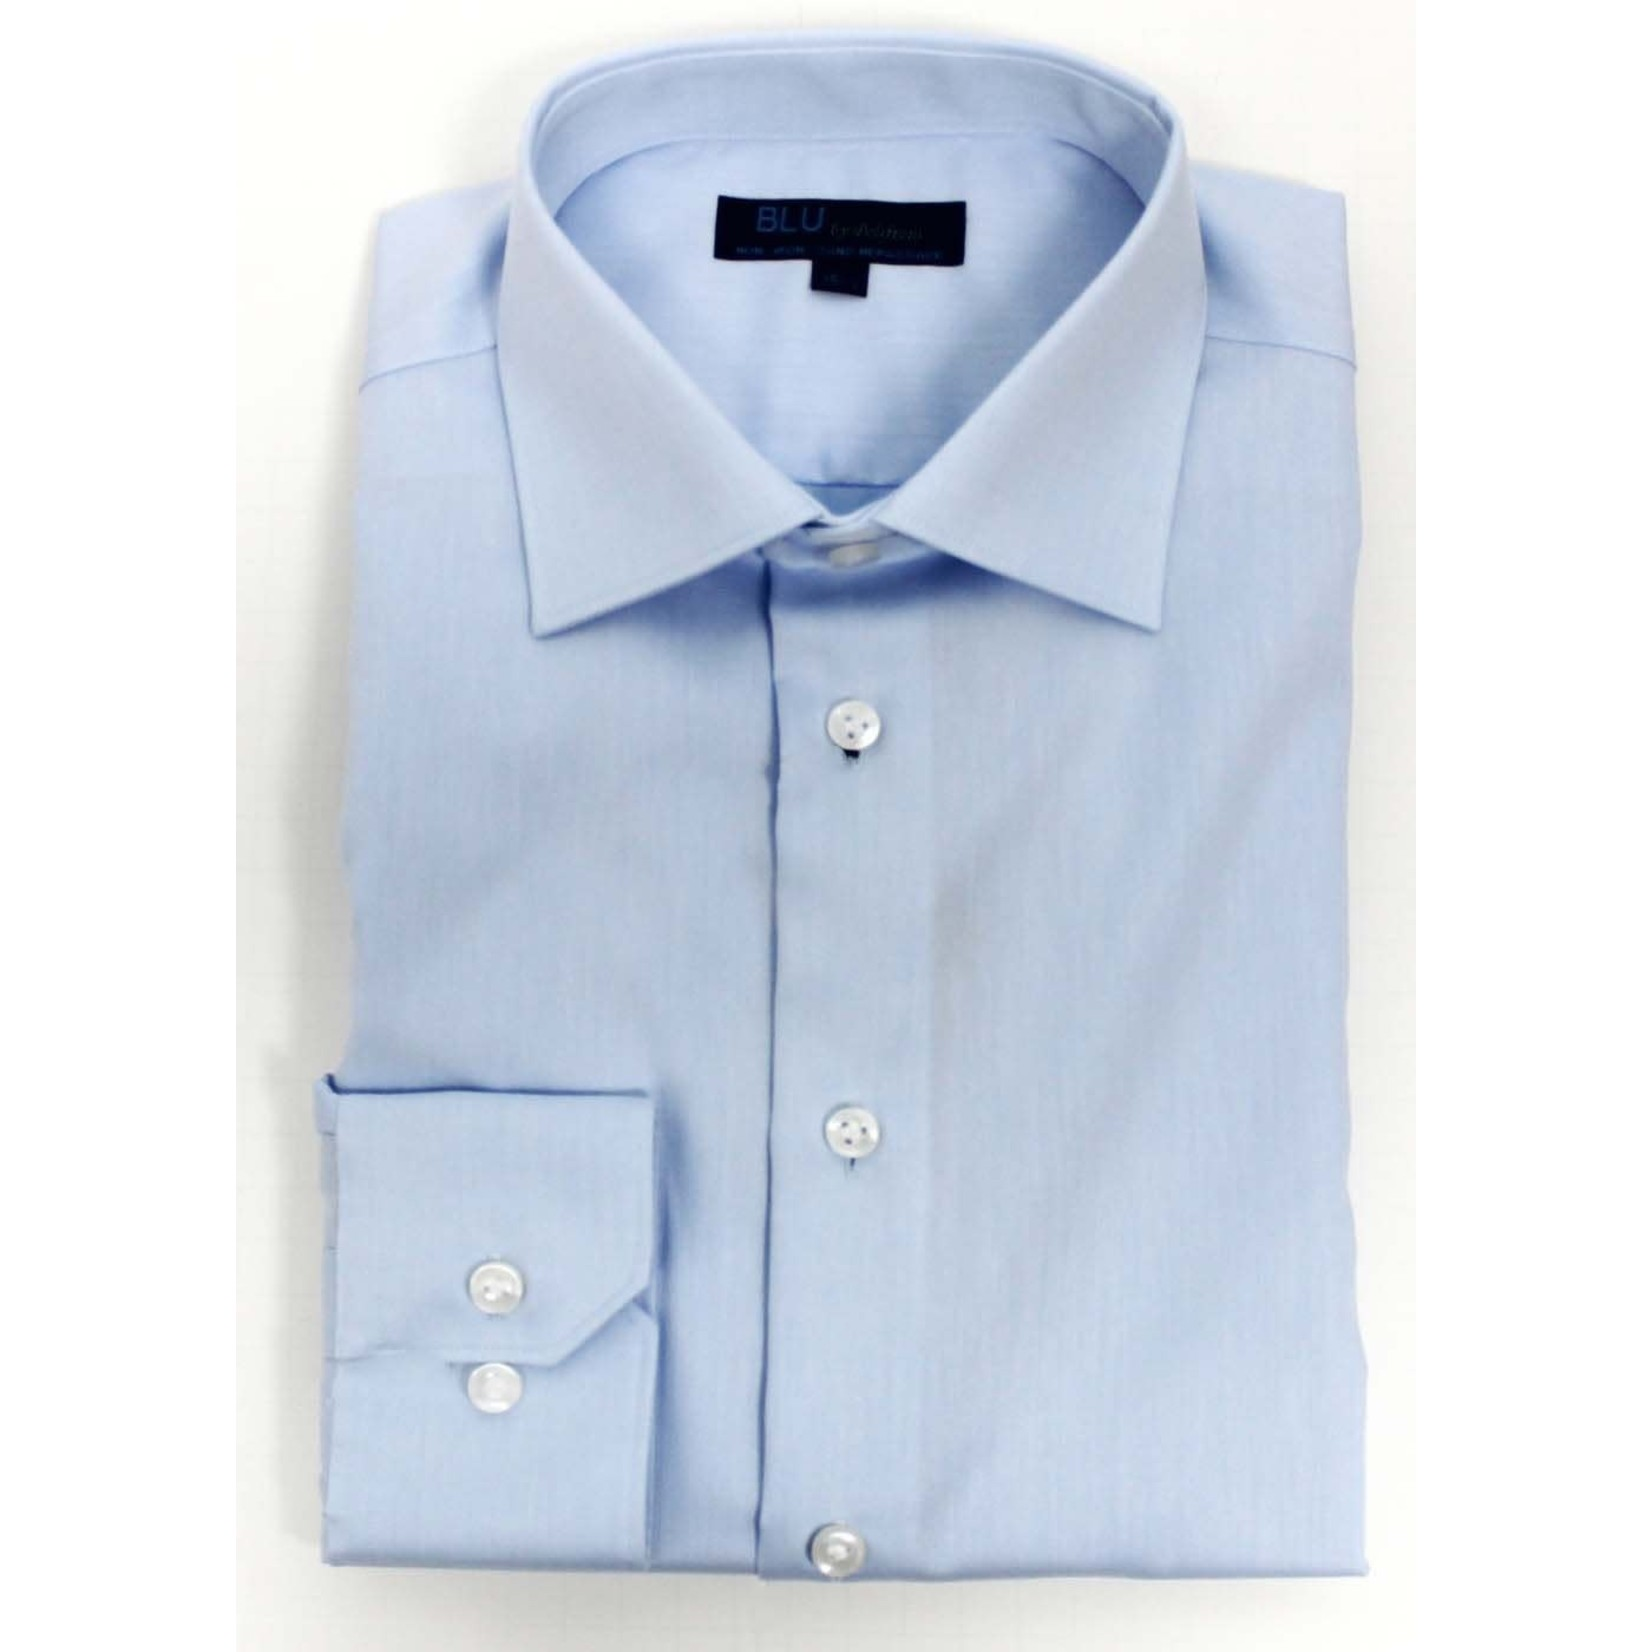 Polifroni Blu-360M Miami Non-Iron Dress Shirt 18 Light Blue